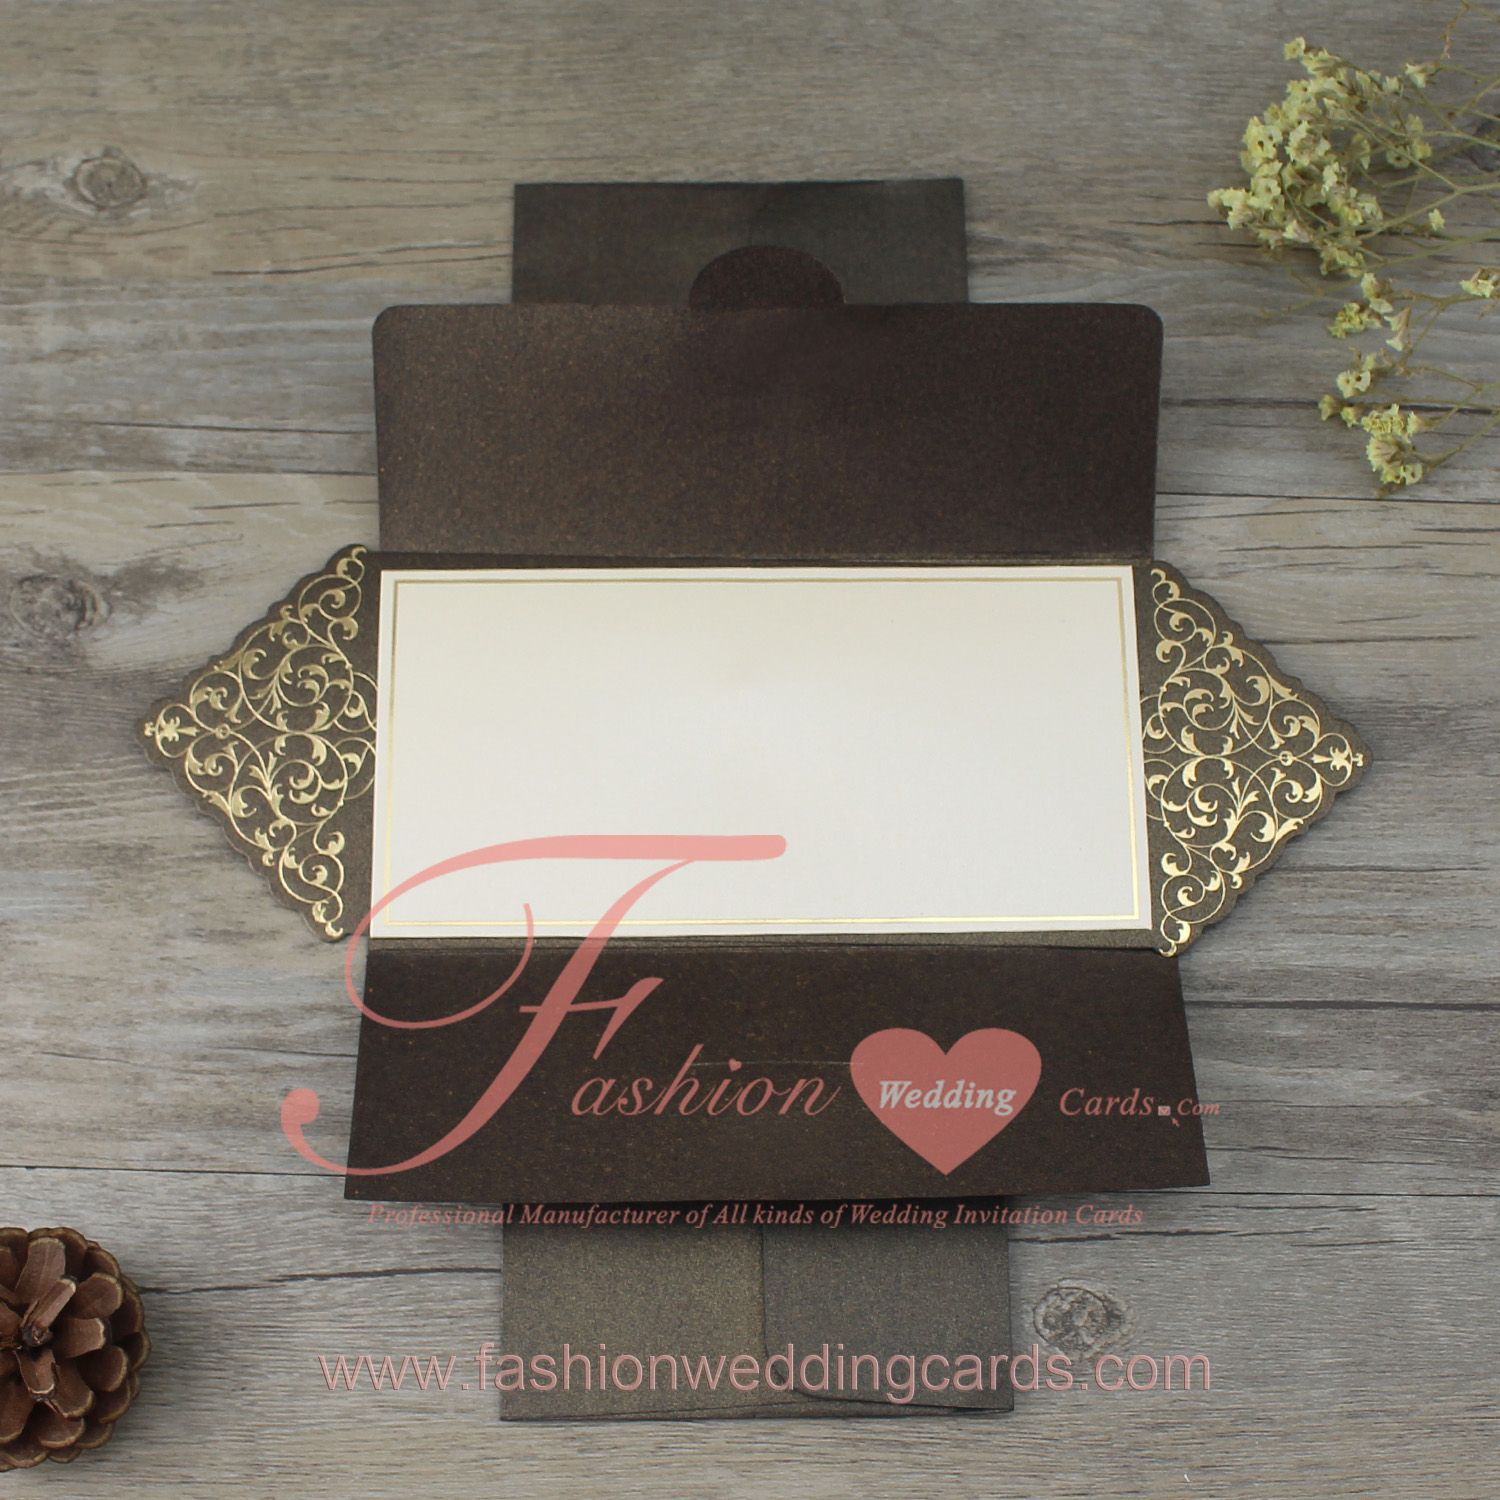 Cheap Exclusive Foiling Wedding Cards Online UK   Invitations ...